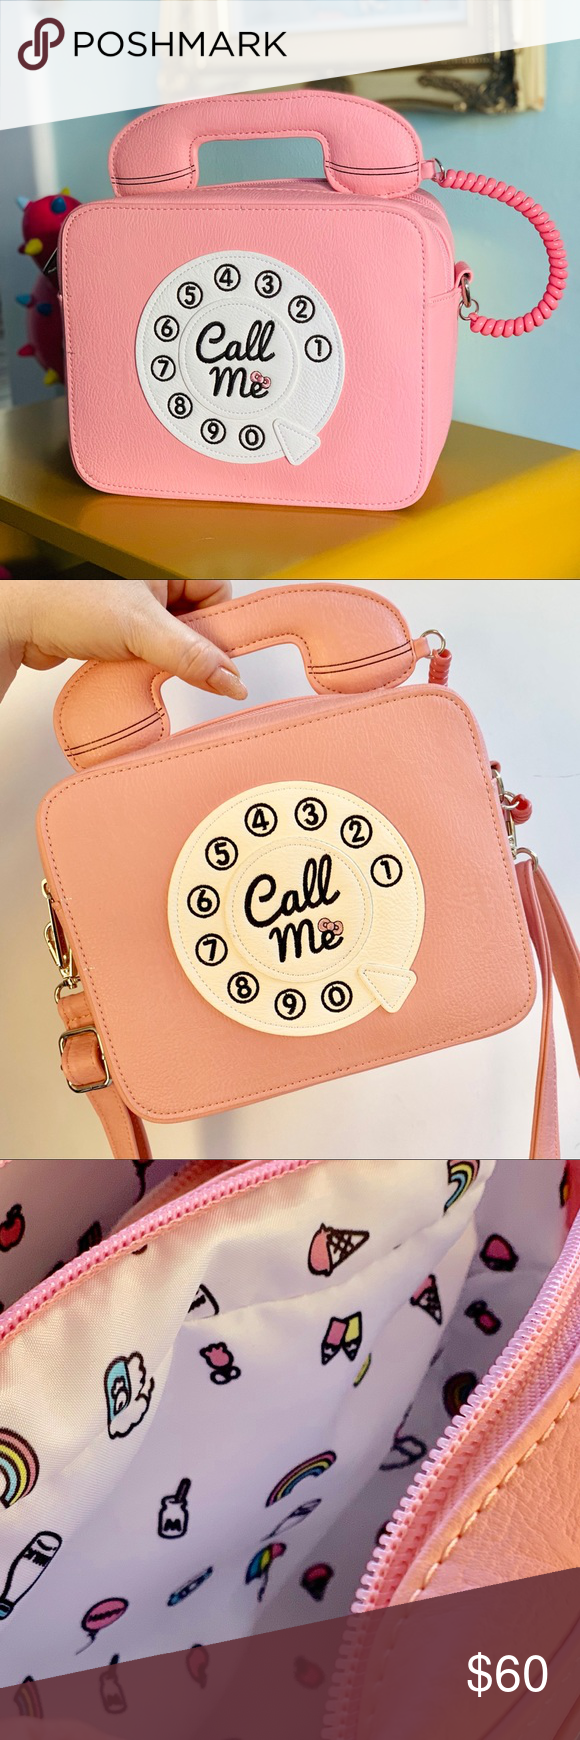 9f9c533d0e Hello Kitty Call me! Crossbody x Loungefly Hello Kitty phone crossbody bag  by Loungefly comes with dual zipper for double compartments.